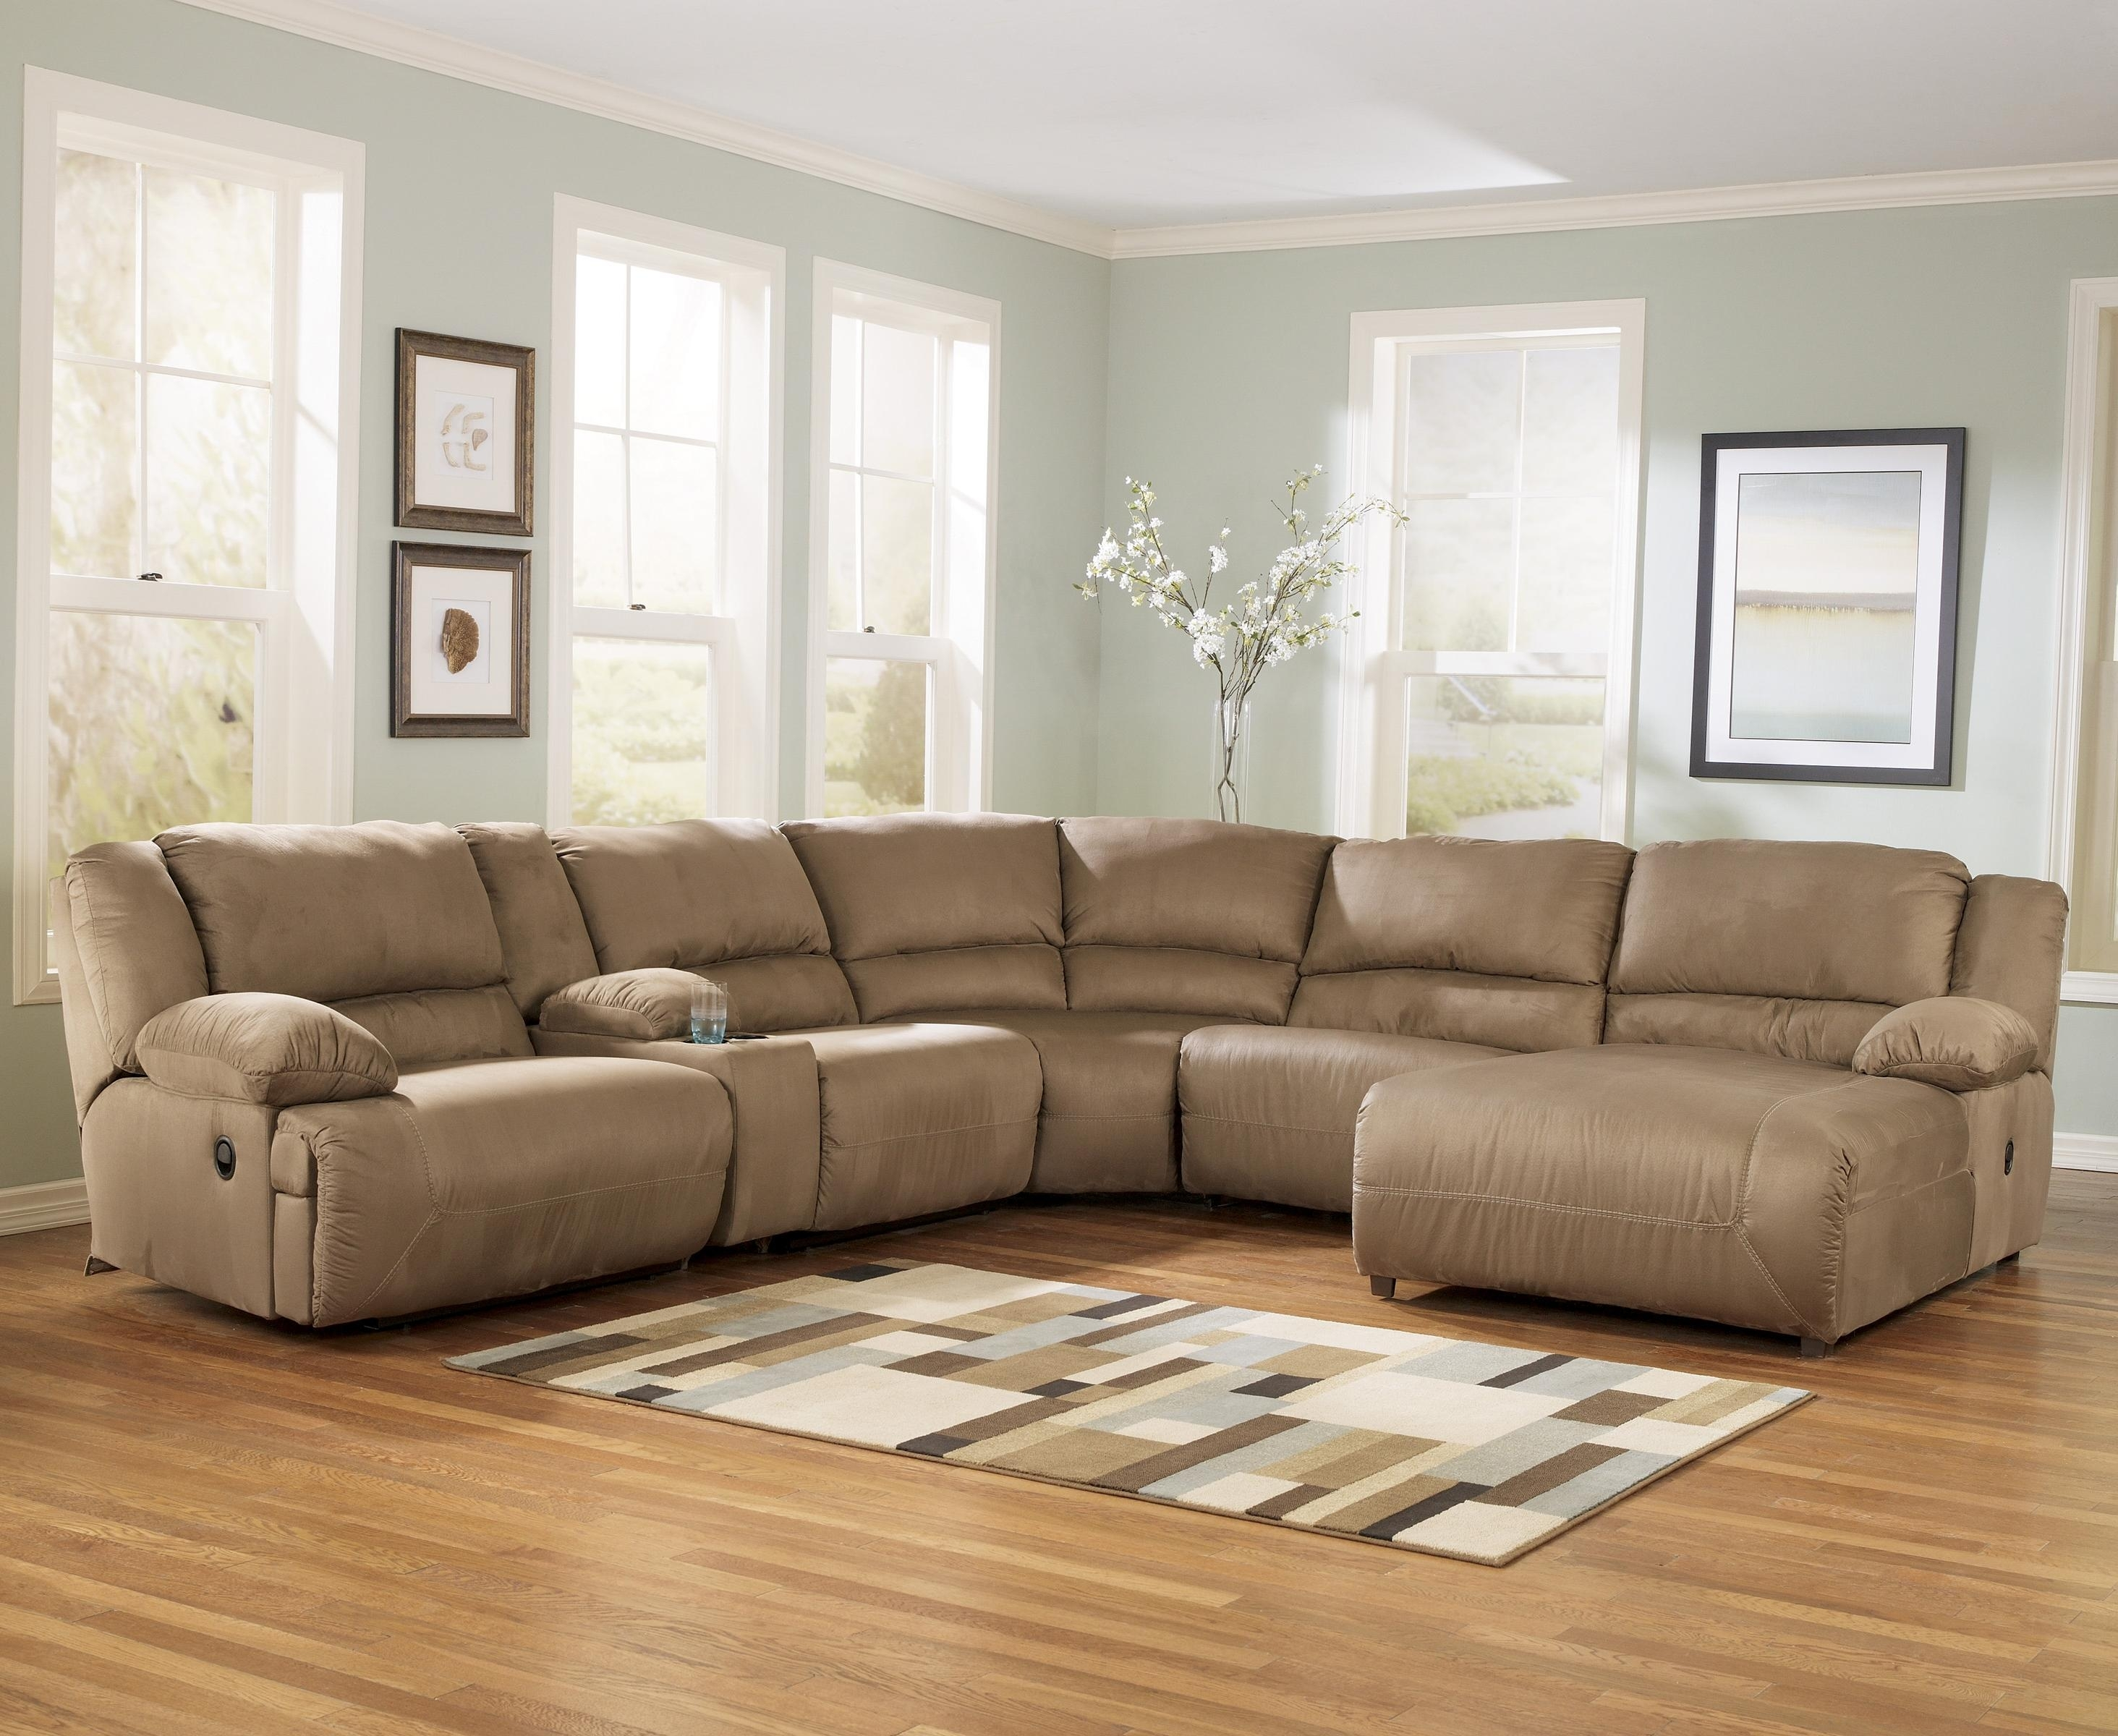 6 Piece Sectional Sofa - Ujecdent with Norfolk Grey 6 Piece Sectionals